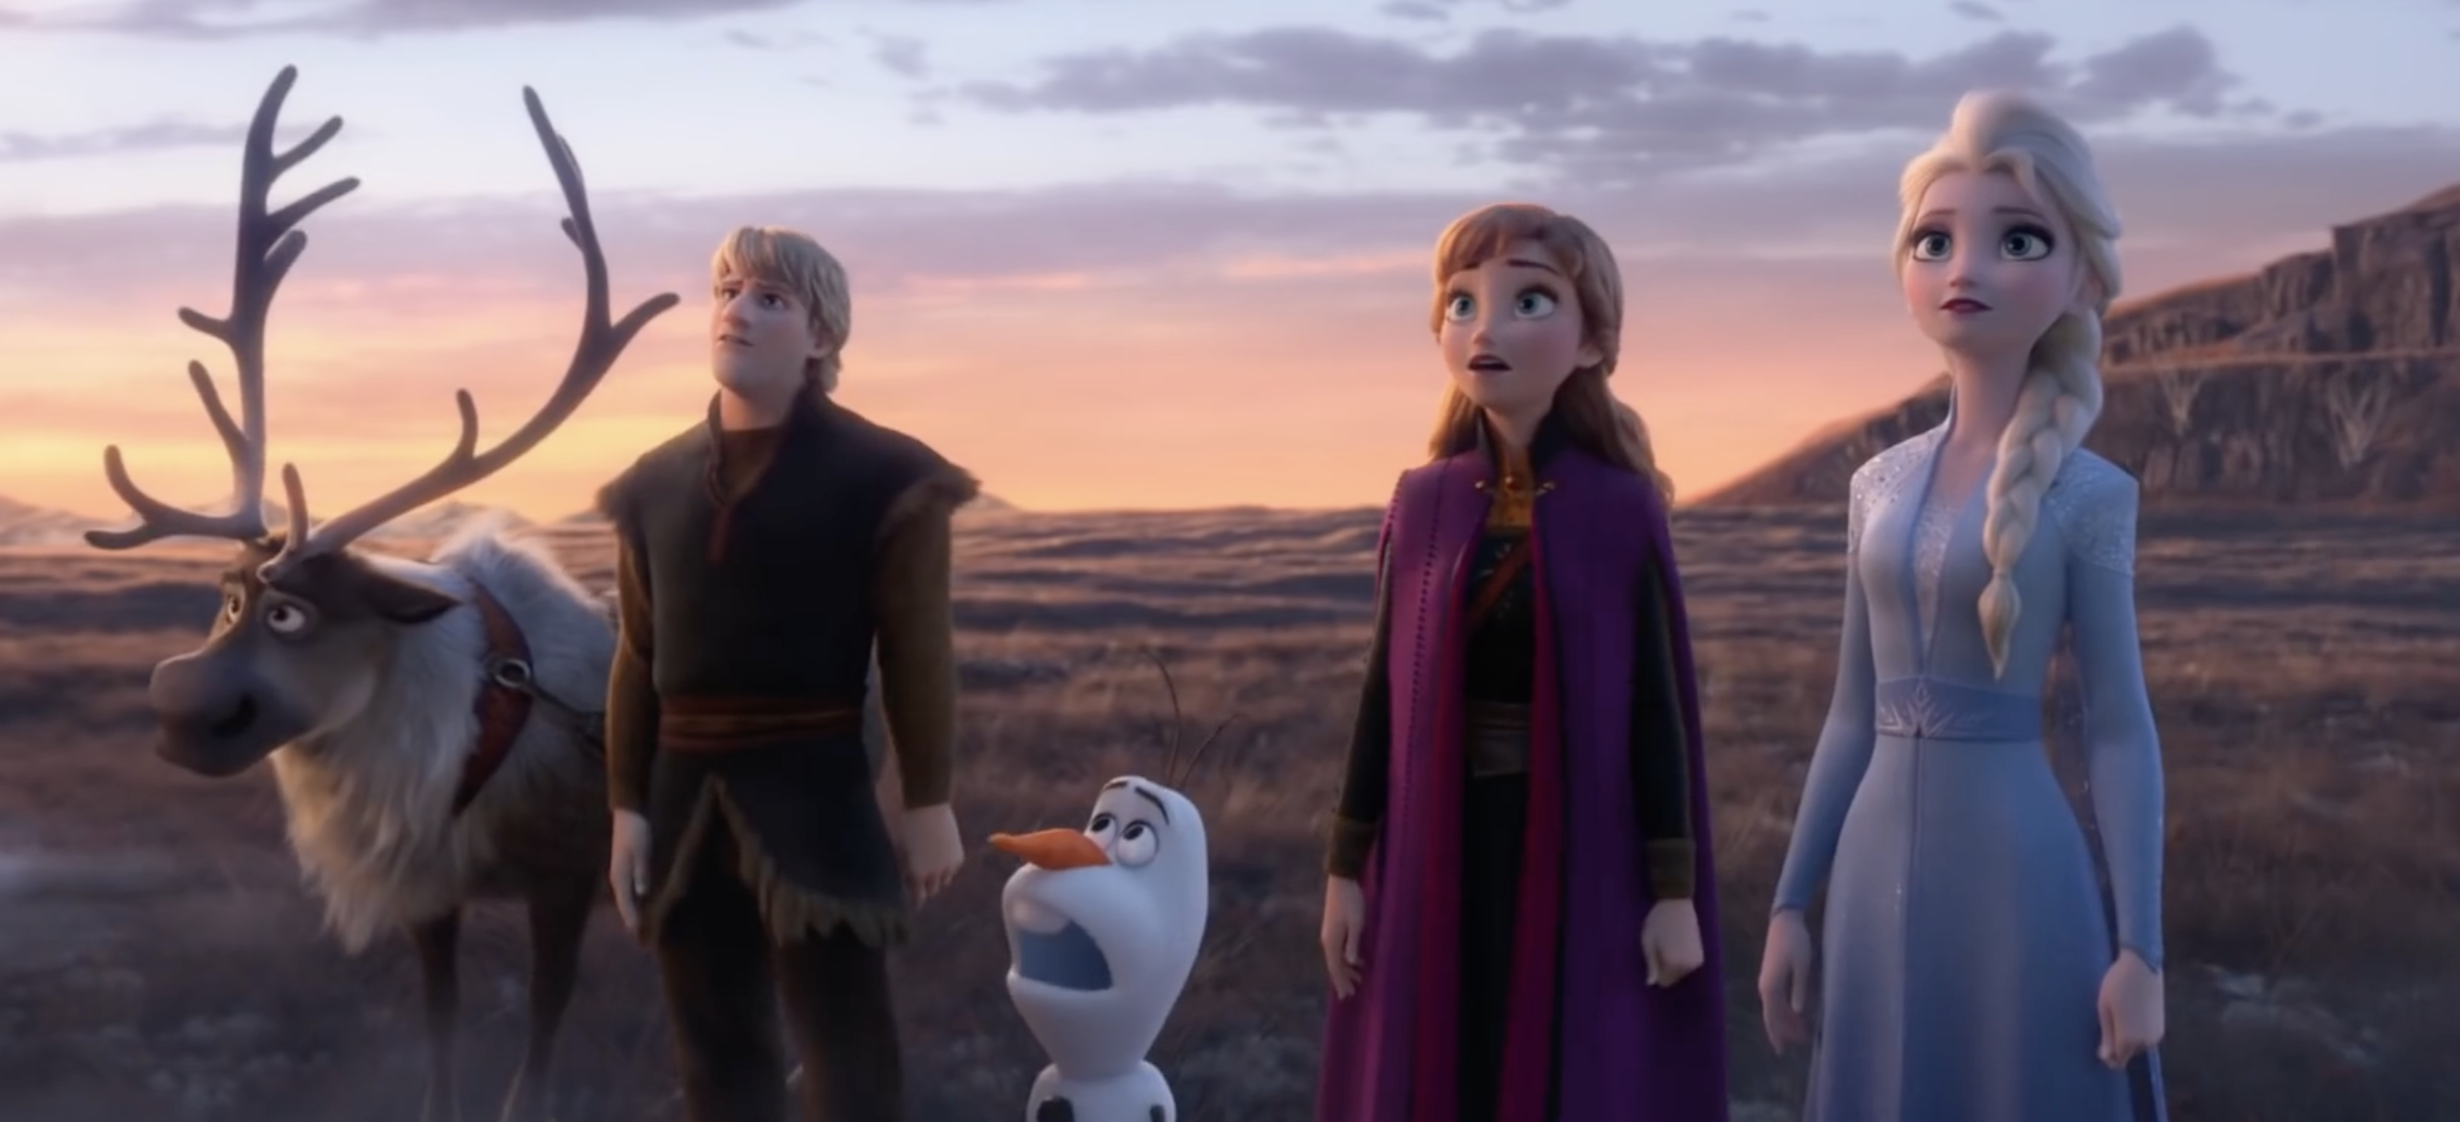 sven, kristoff, olaf, anna and elsa stare in awe